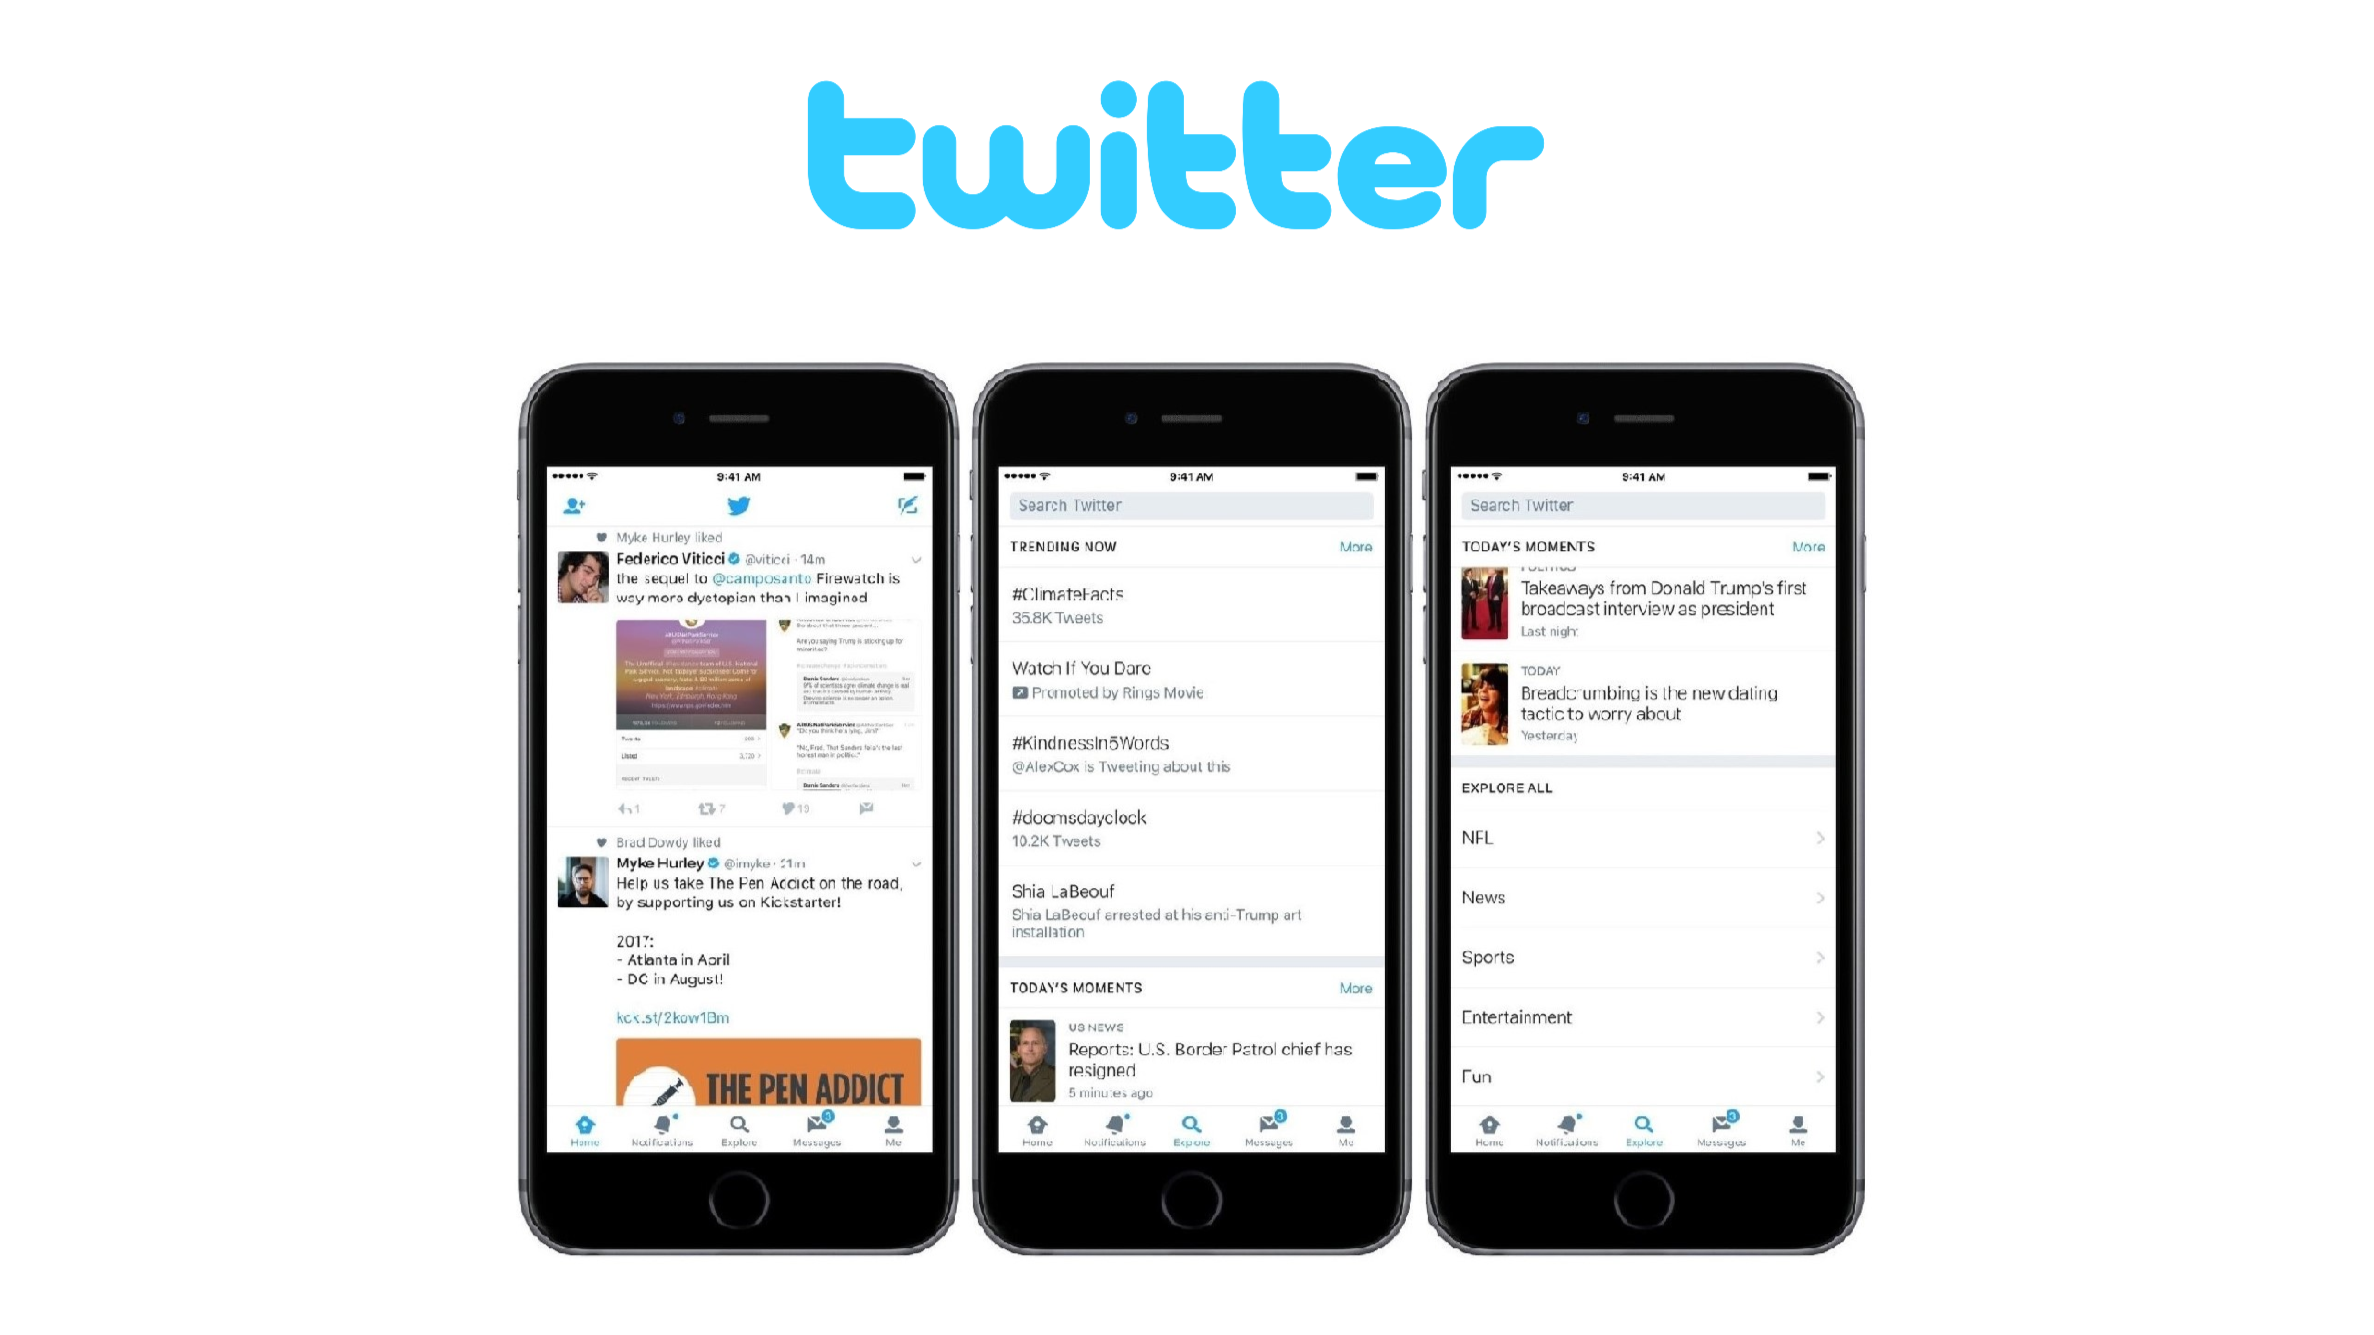 Twitter-Explore-Guide-1